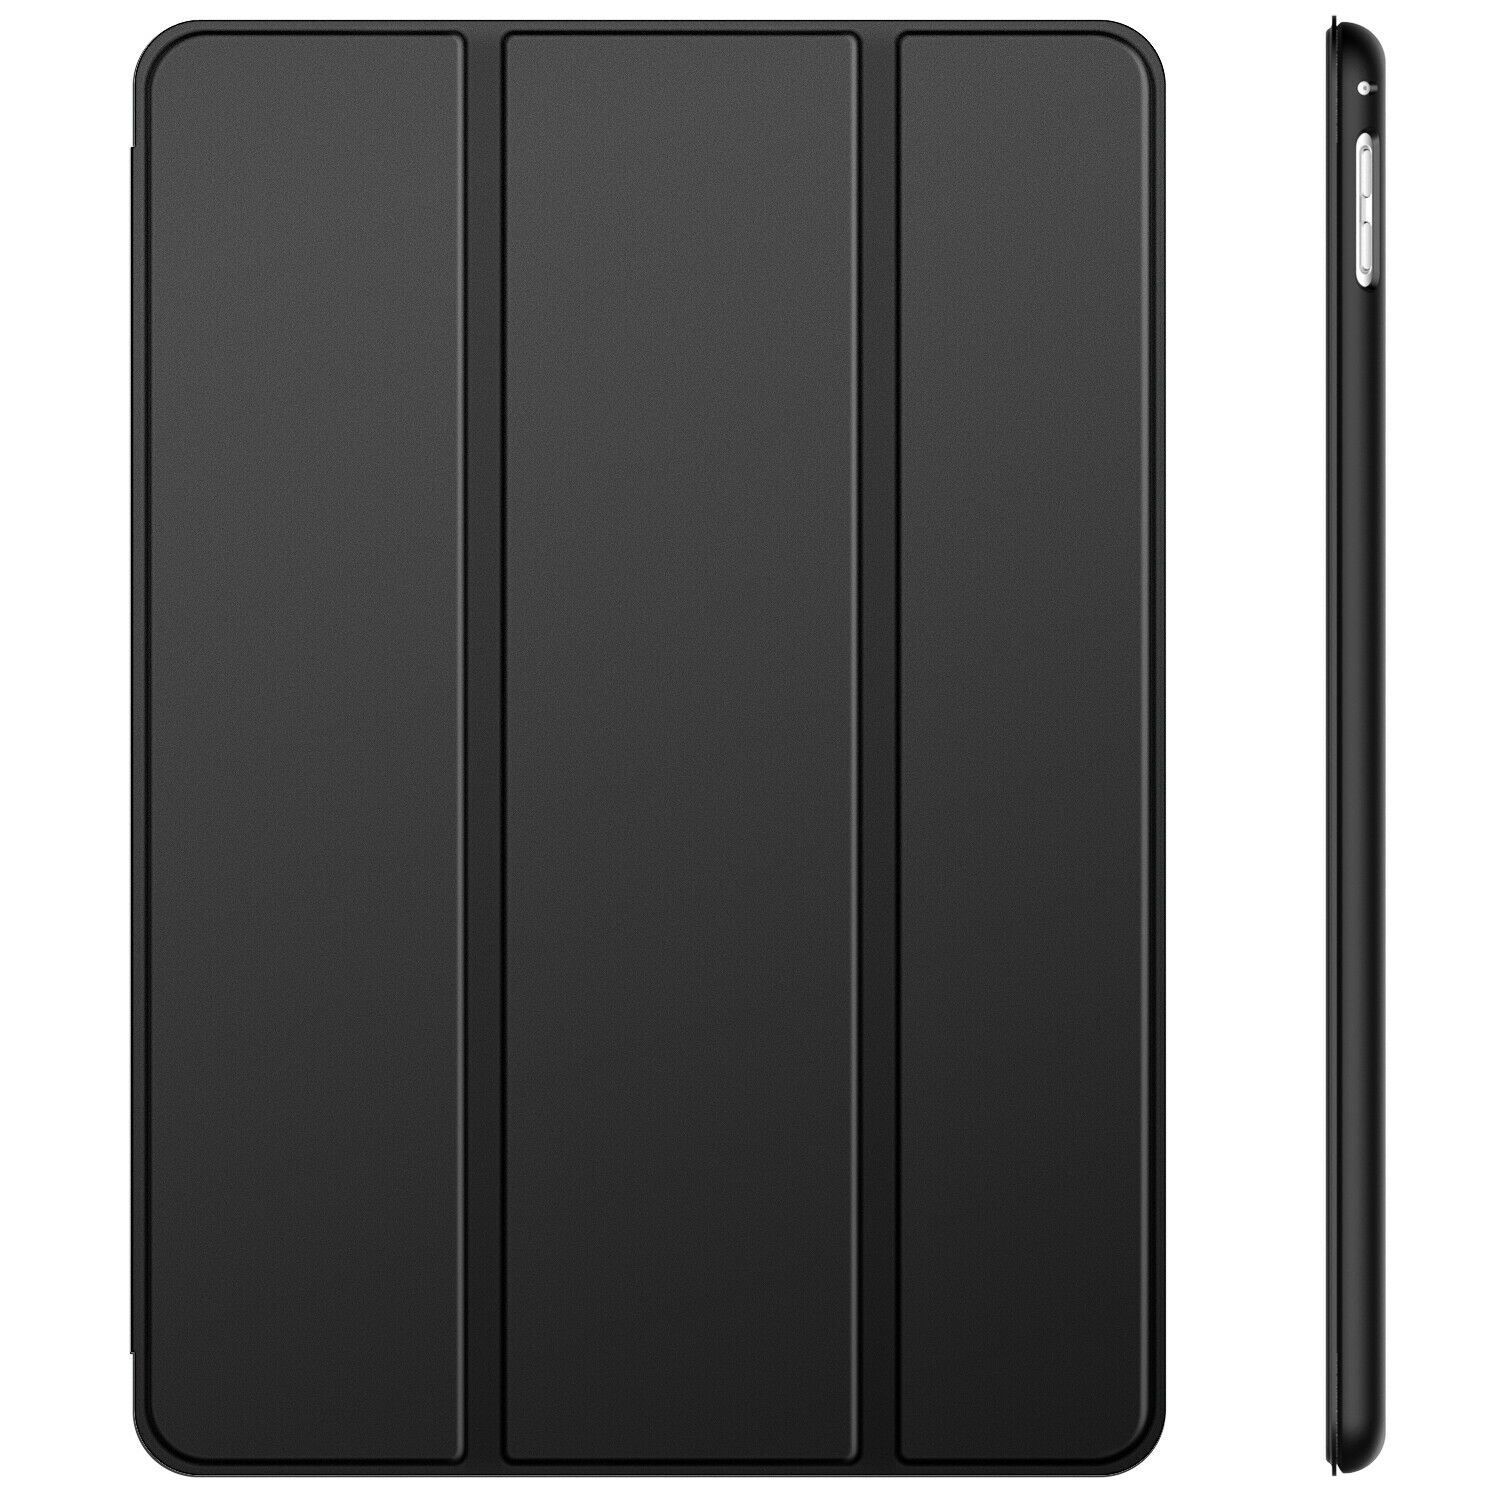 JETech Case for Apple iPad Pro 9.7 Smart Cover with Auto Sle